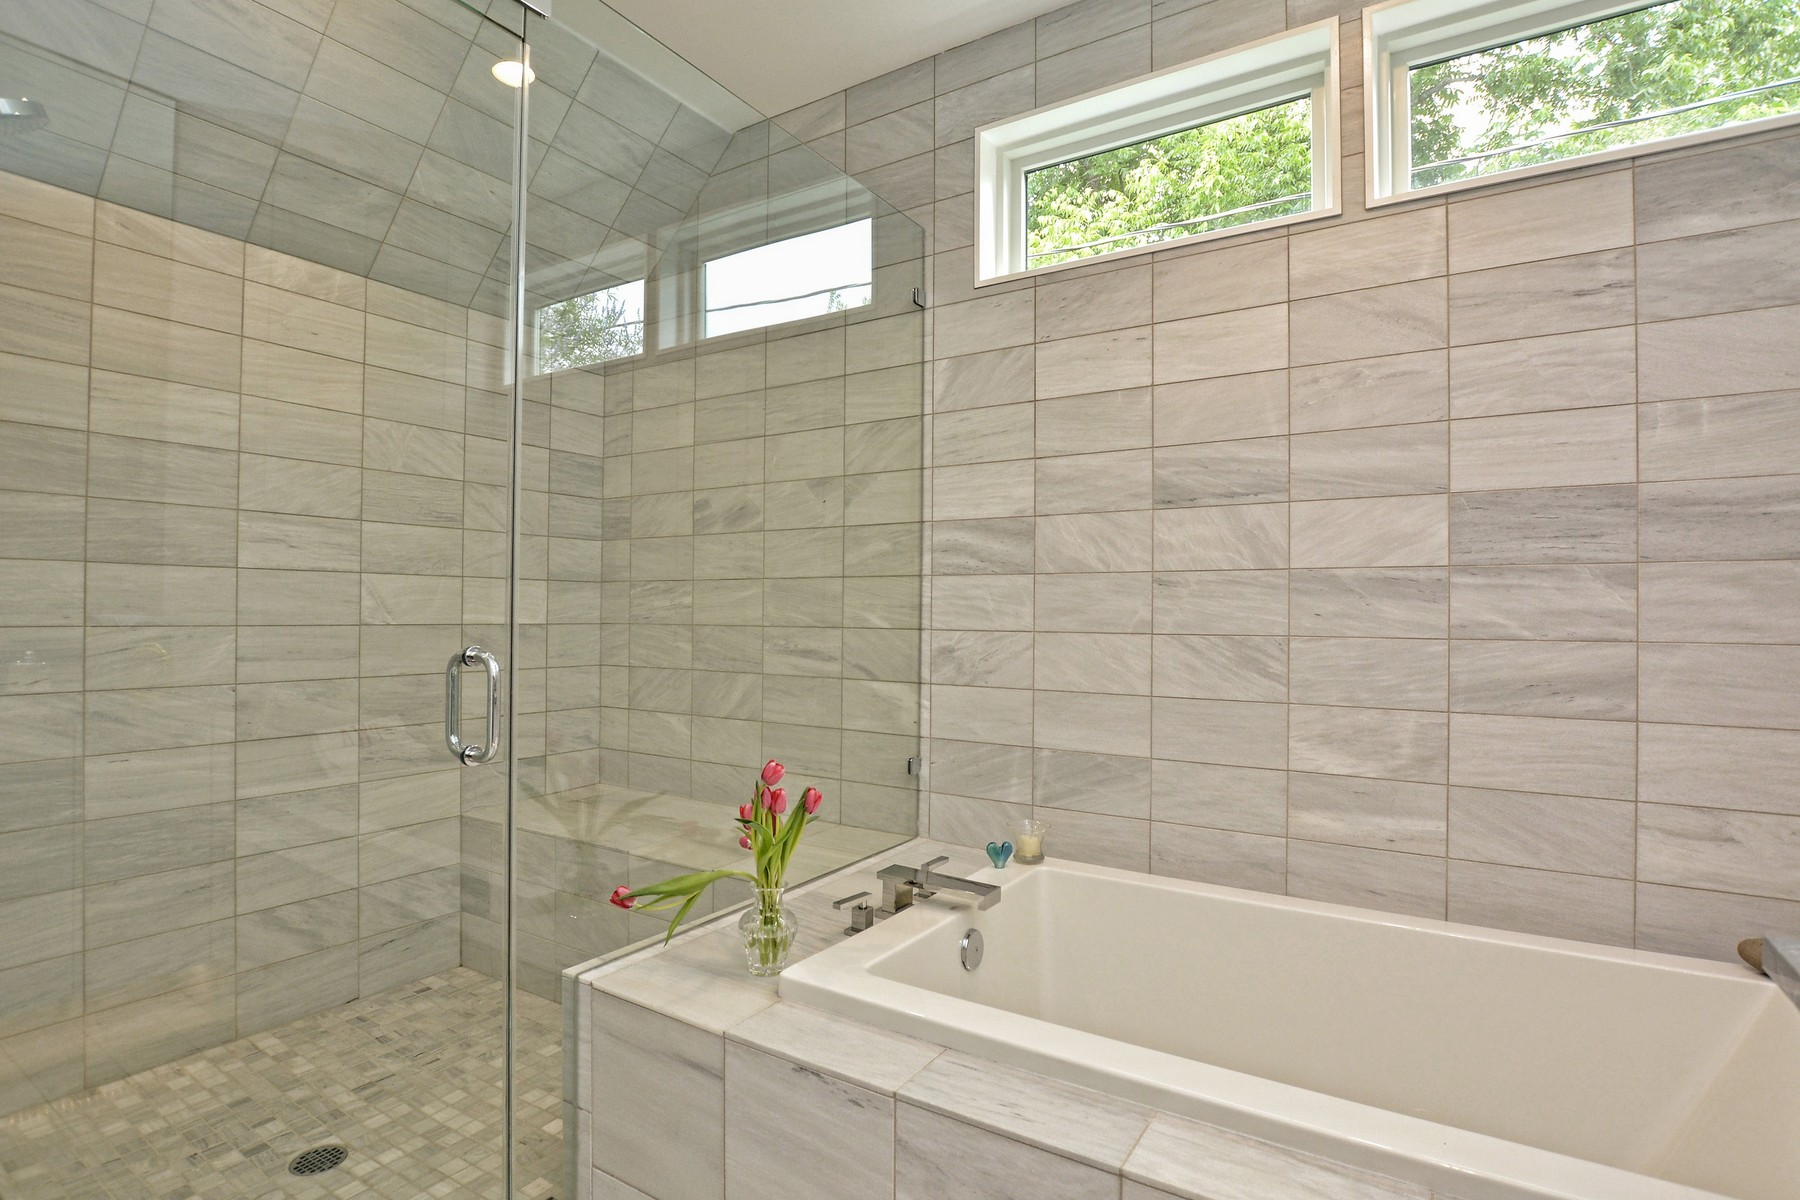 Additional photo for property listing at Custom Contemporary in Zilker Neighborhood 2012 Rabb Glen St A Austin, Texas 78704 United States